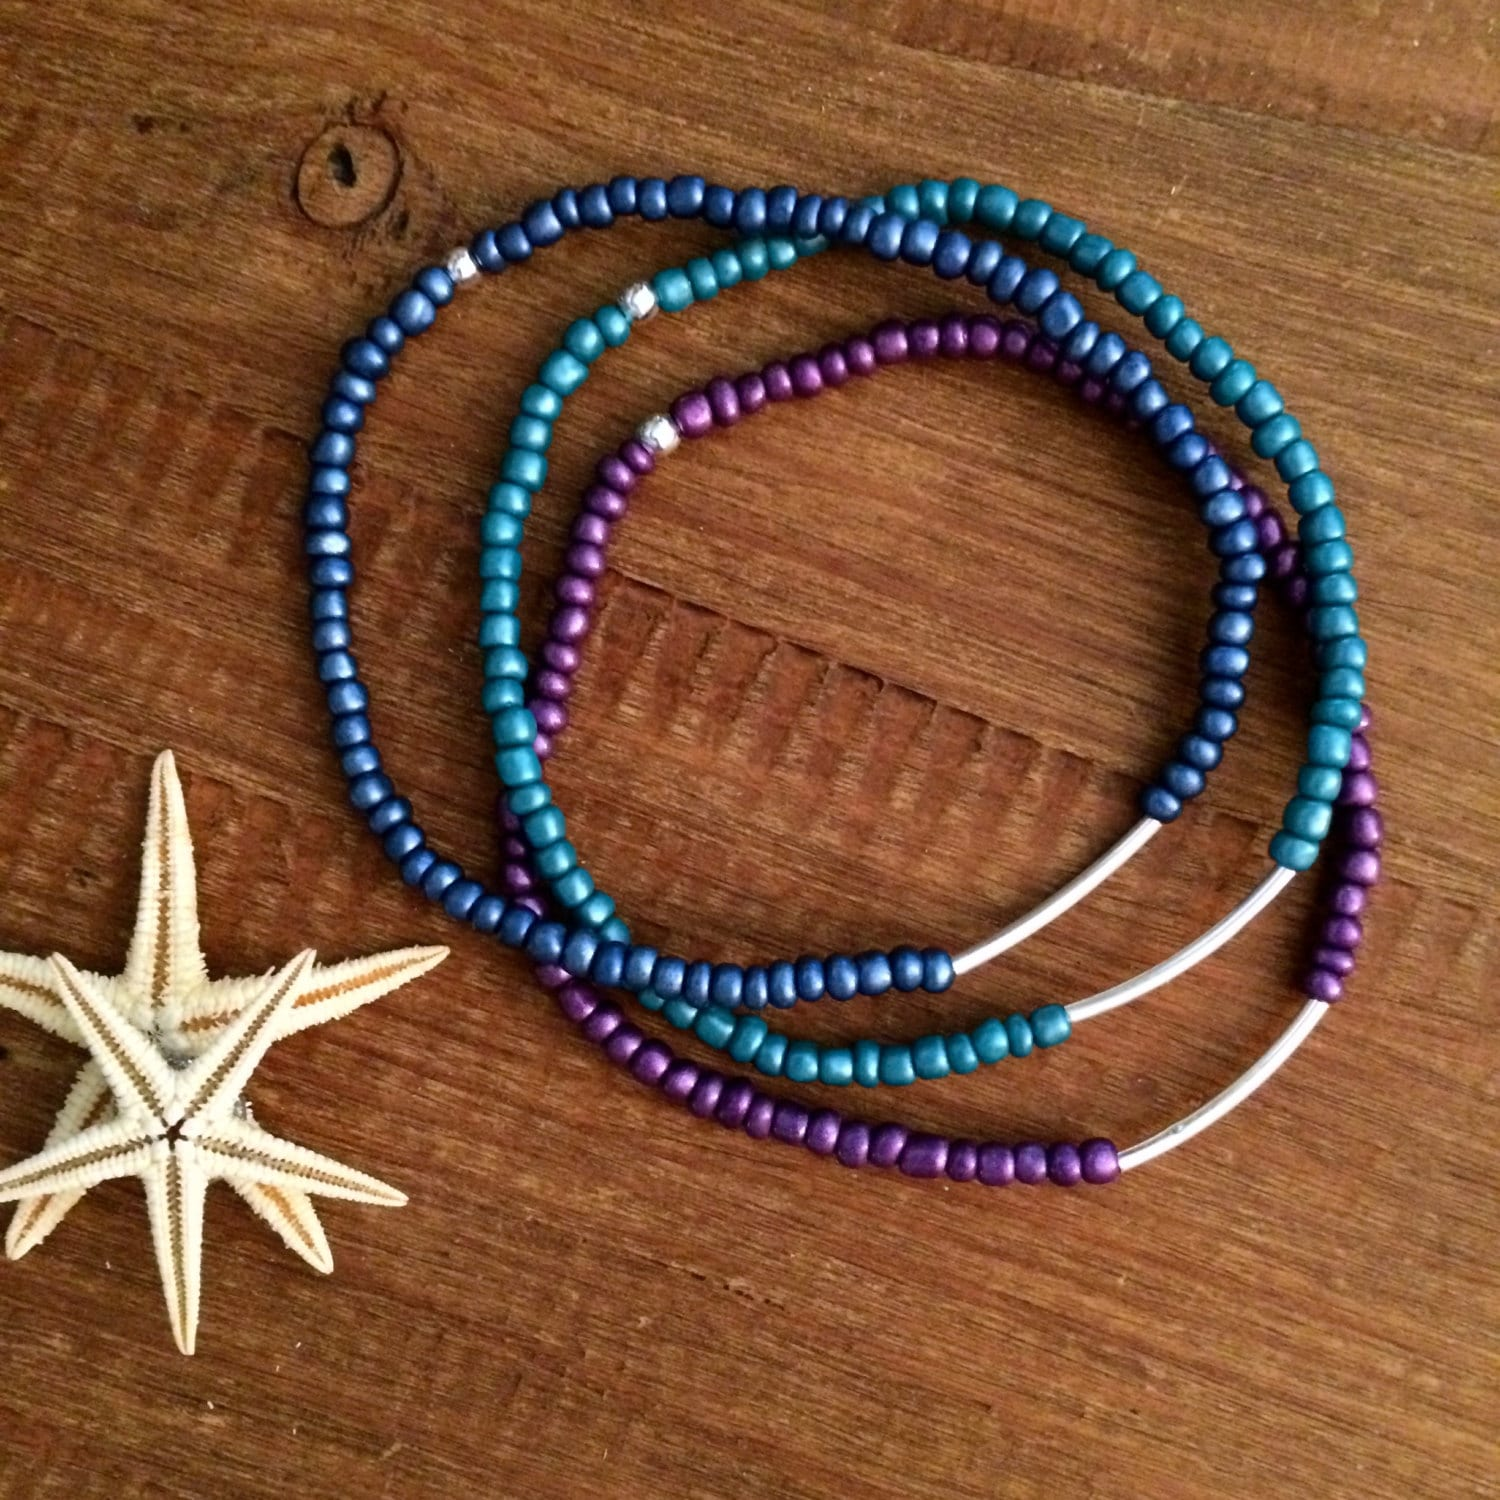 listing bracelets il gifts boho gift womens fullxfull stretch bridesmaids arm beaded band custom beach party blue anklet pride teal wedding bracelet ankle purple july